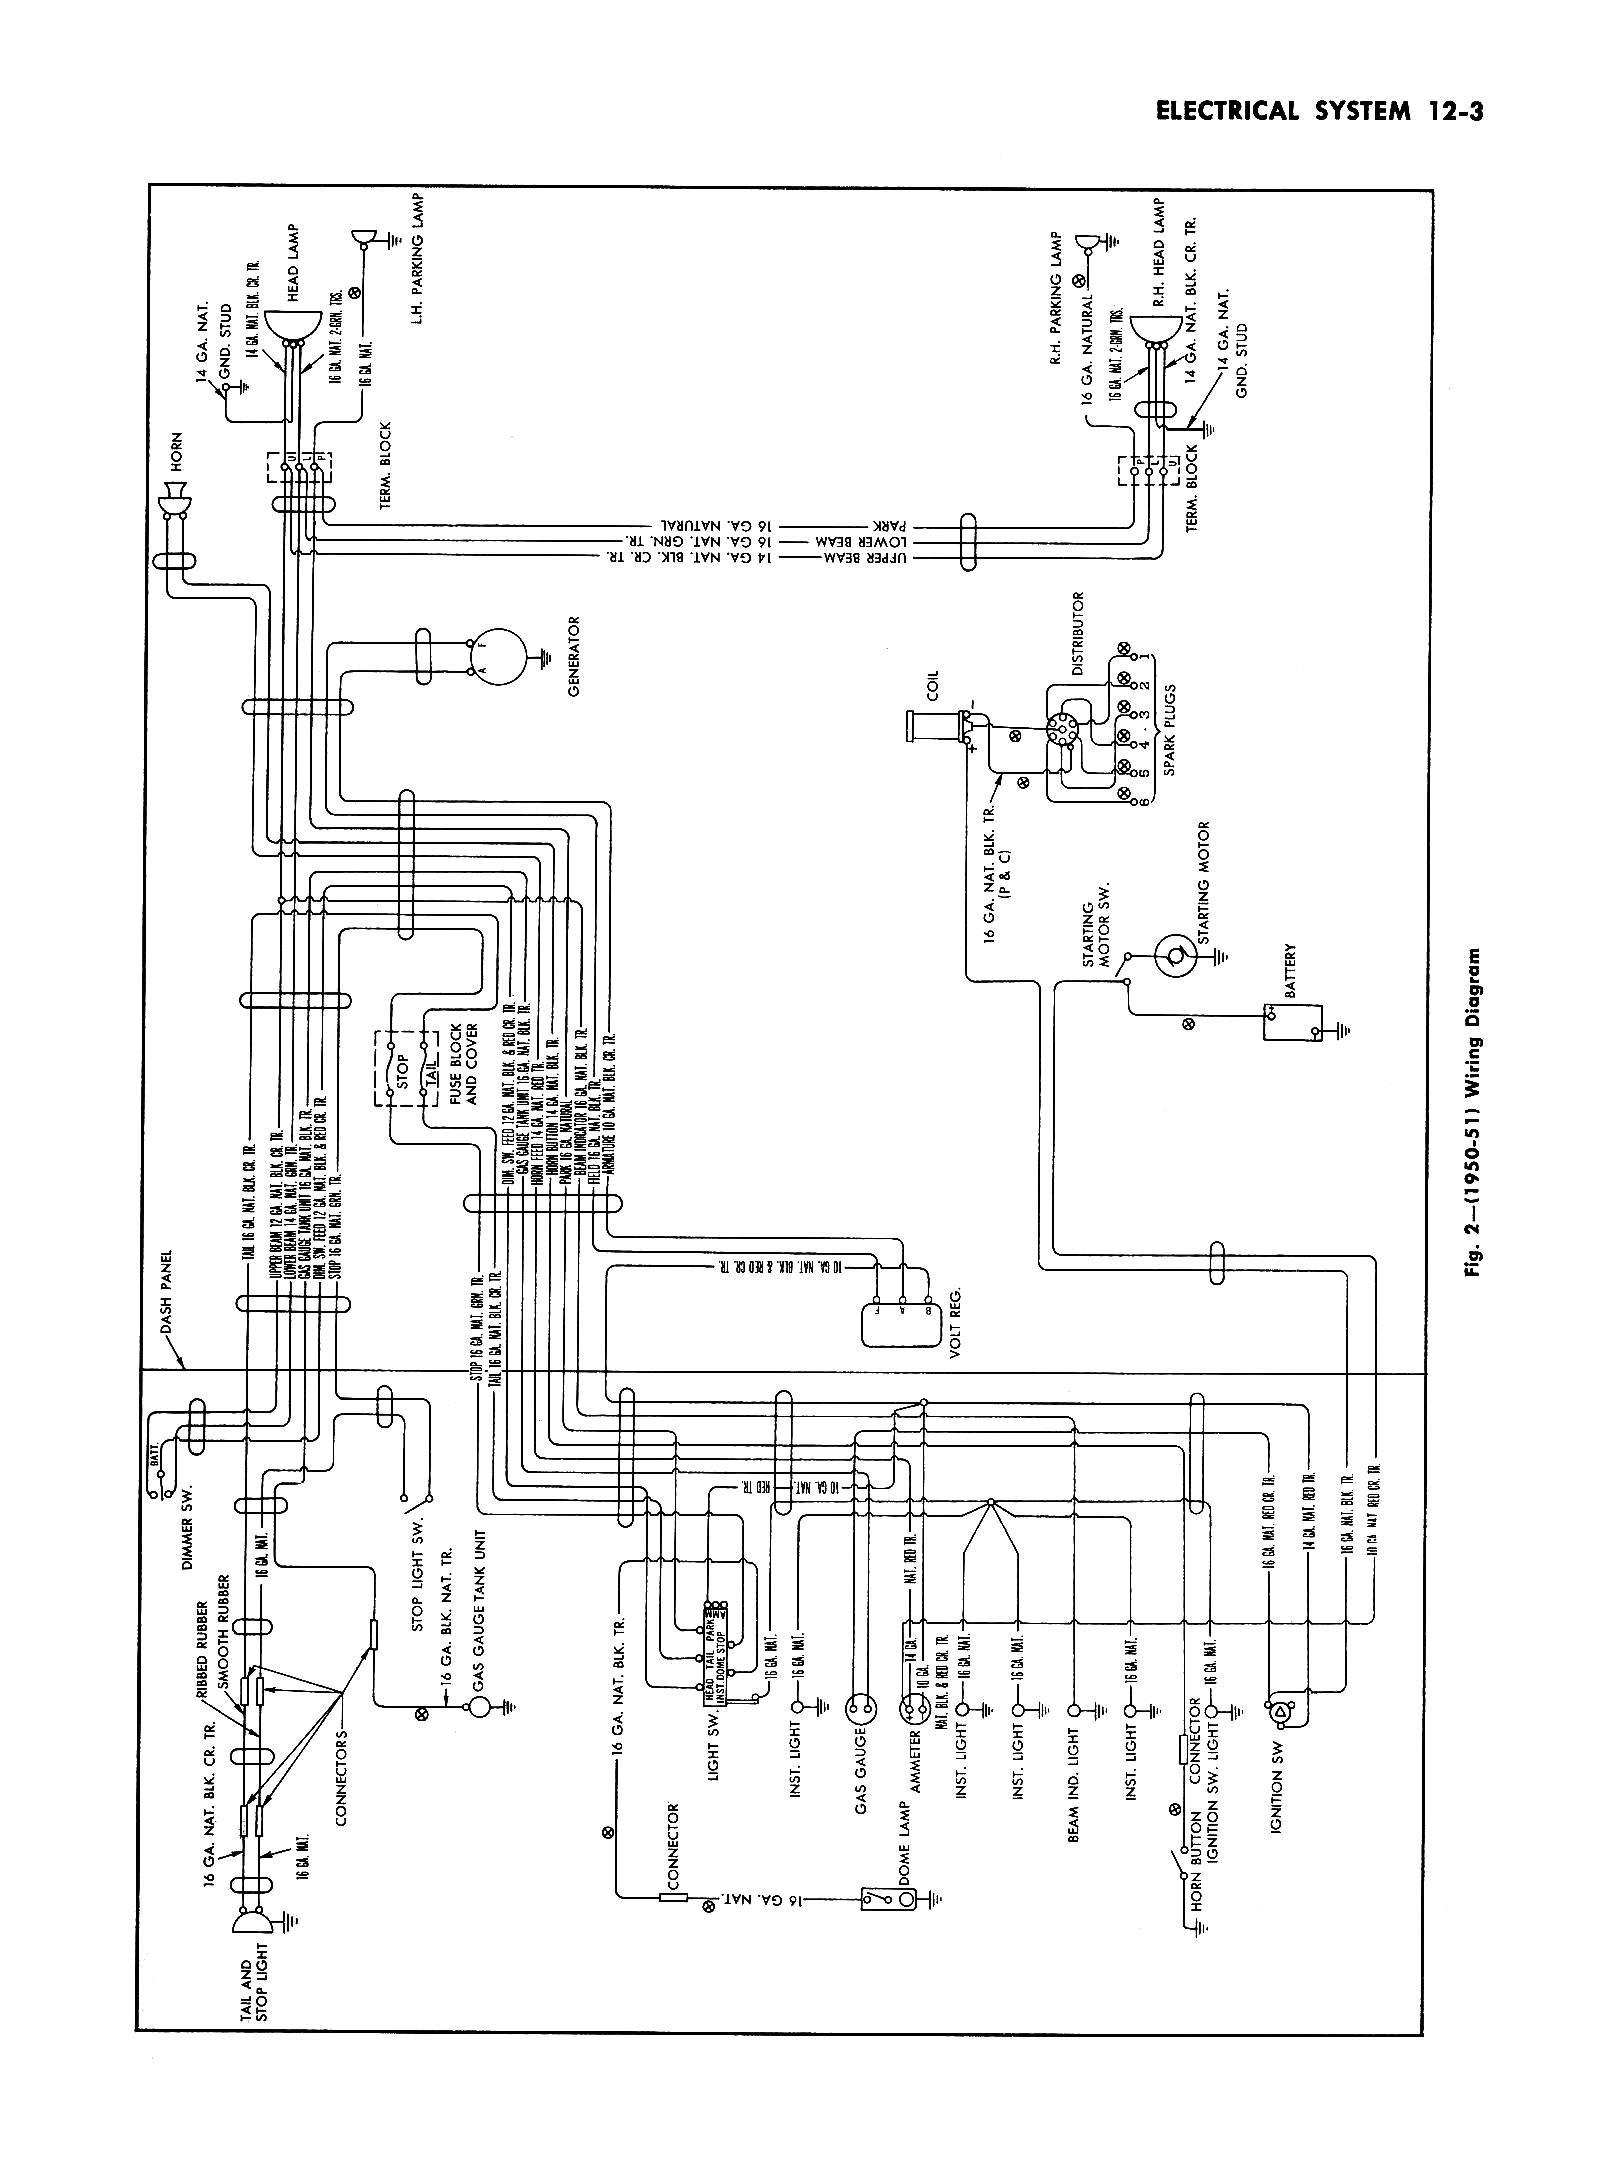 Wiring Diagram Further 1950 Studebaker Truck Rat Rod